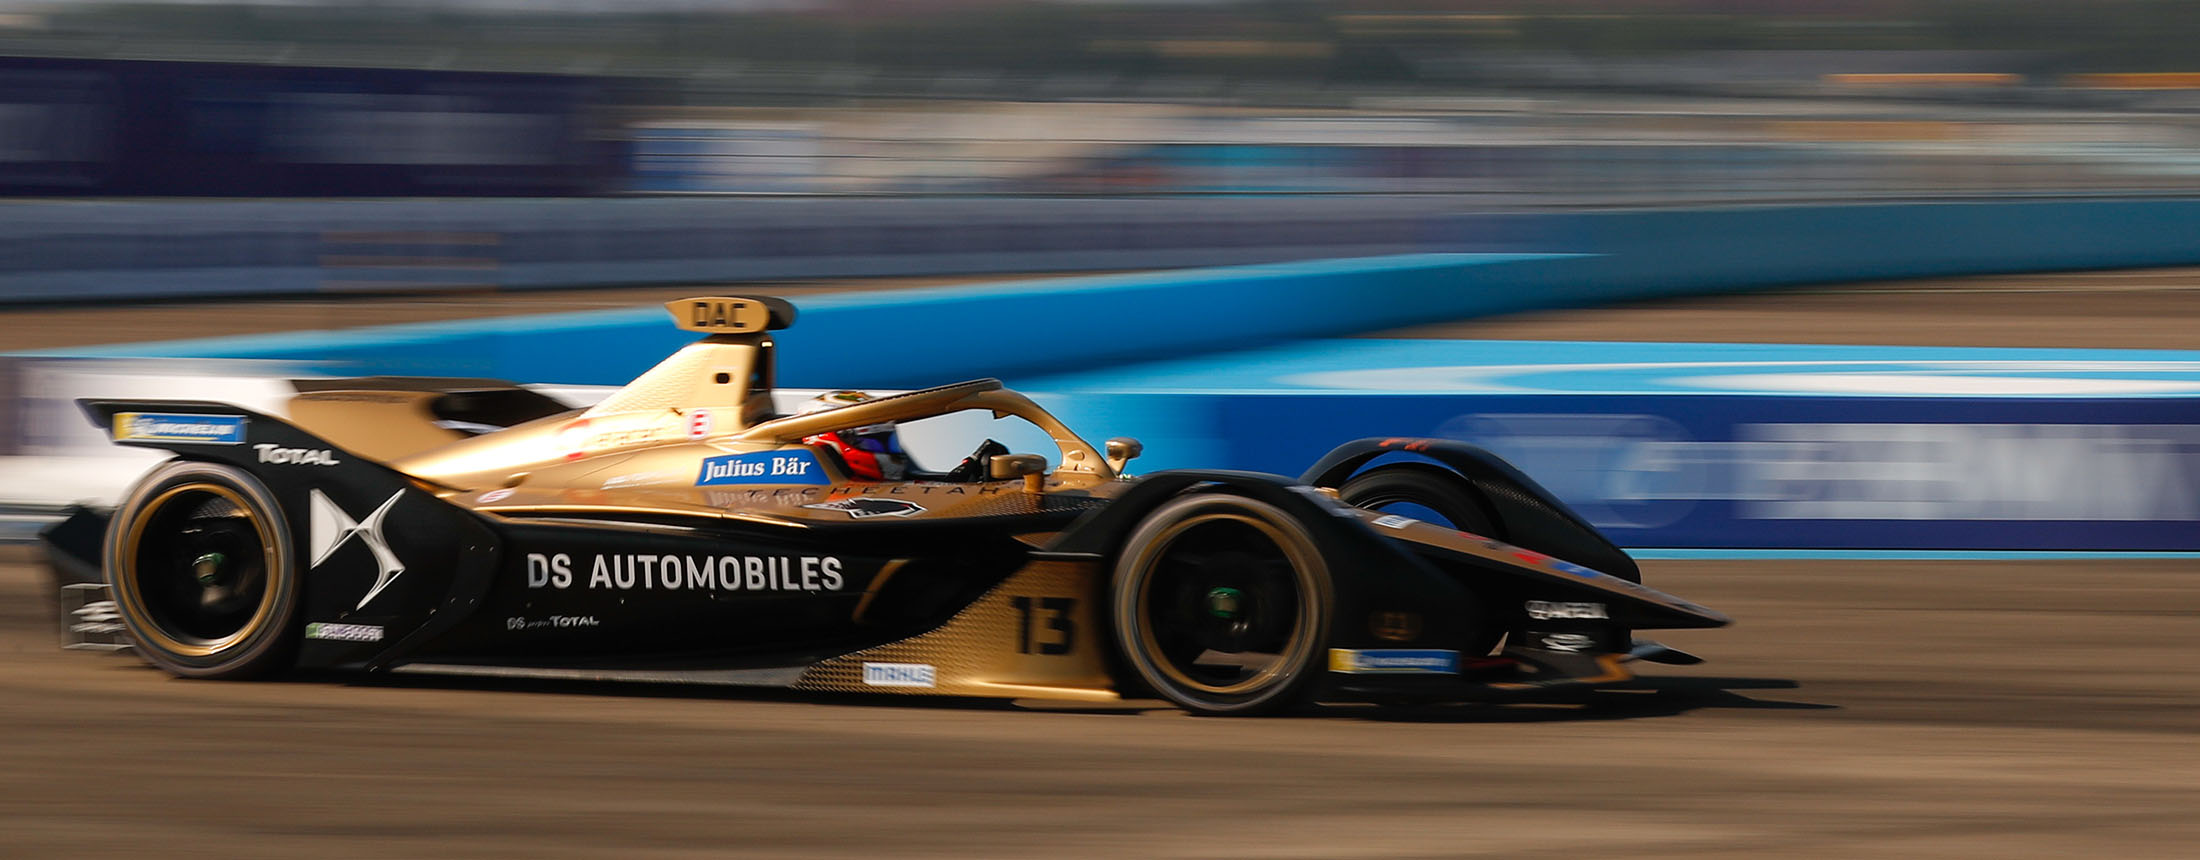 BERLIN TEMPELHOF AIRPORT, GERMANY - AUGUST 08: Antonio Felix da Costa (PRT), DS Techeetah, DS E-Tense FE20 during the Berlin E-Prix III at Berlin Tempelhof Airport on Saturday August 08, 2020 in Berlin, Germany. (Photo by Alastair Staley / LAT Images)